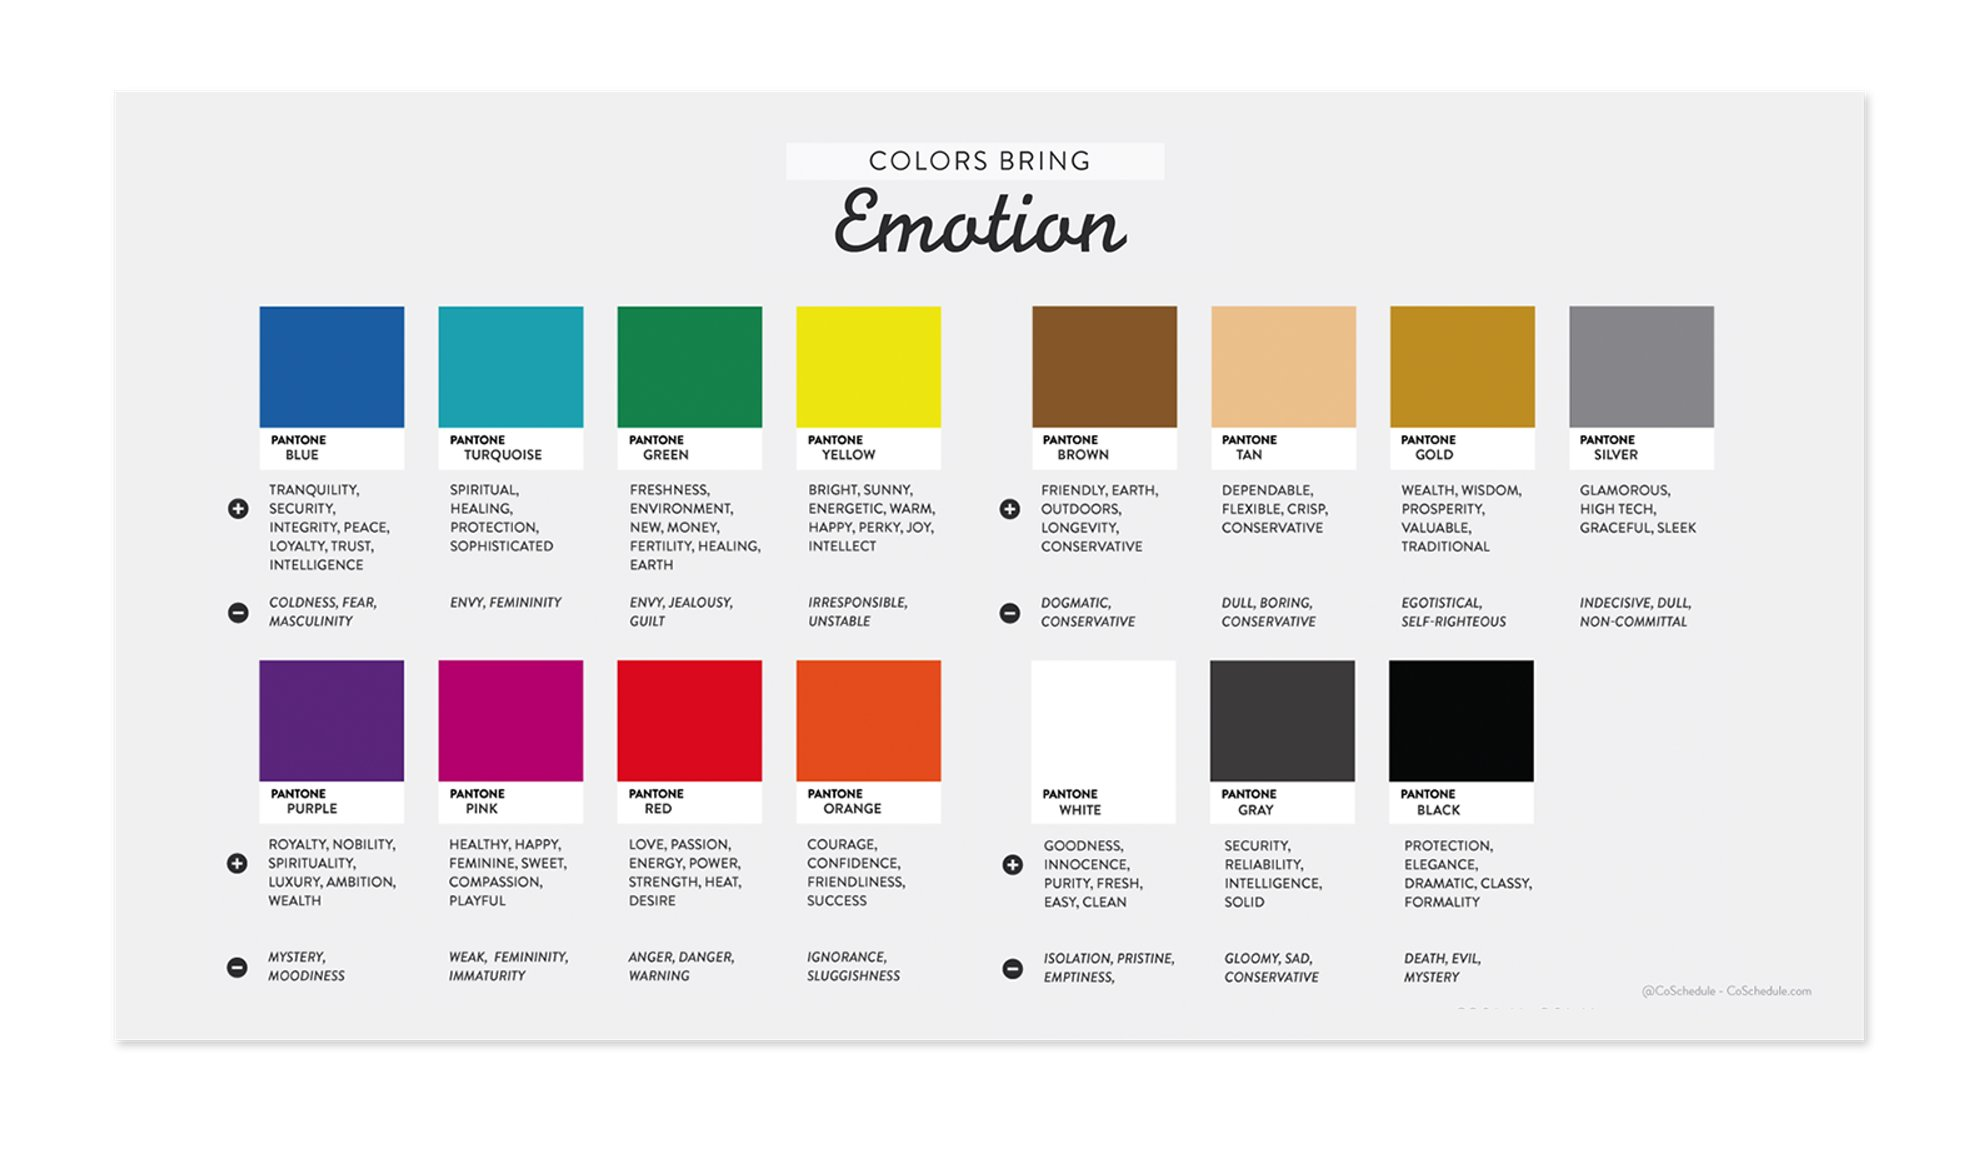 List of colors with connected emotions